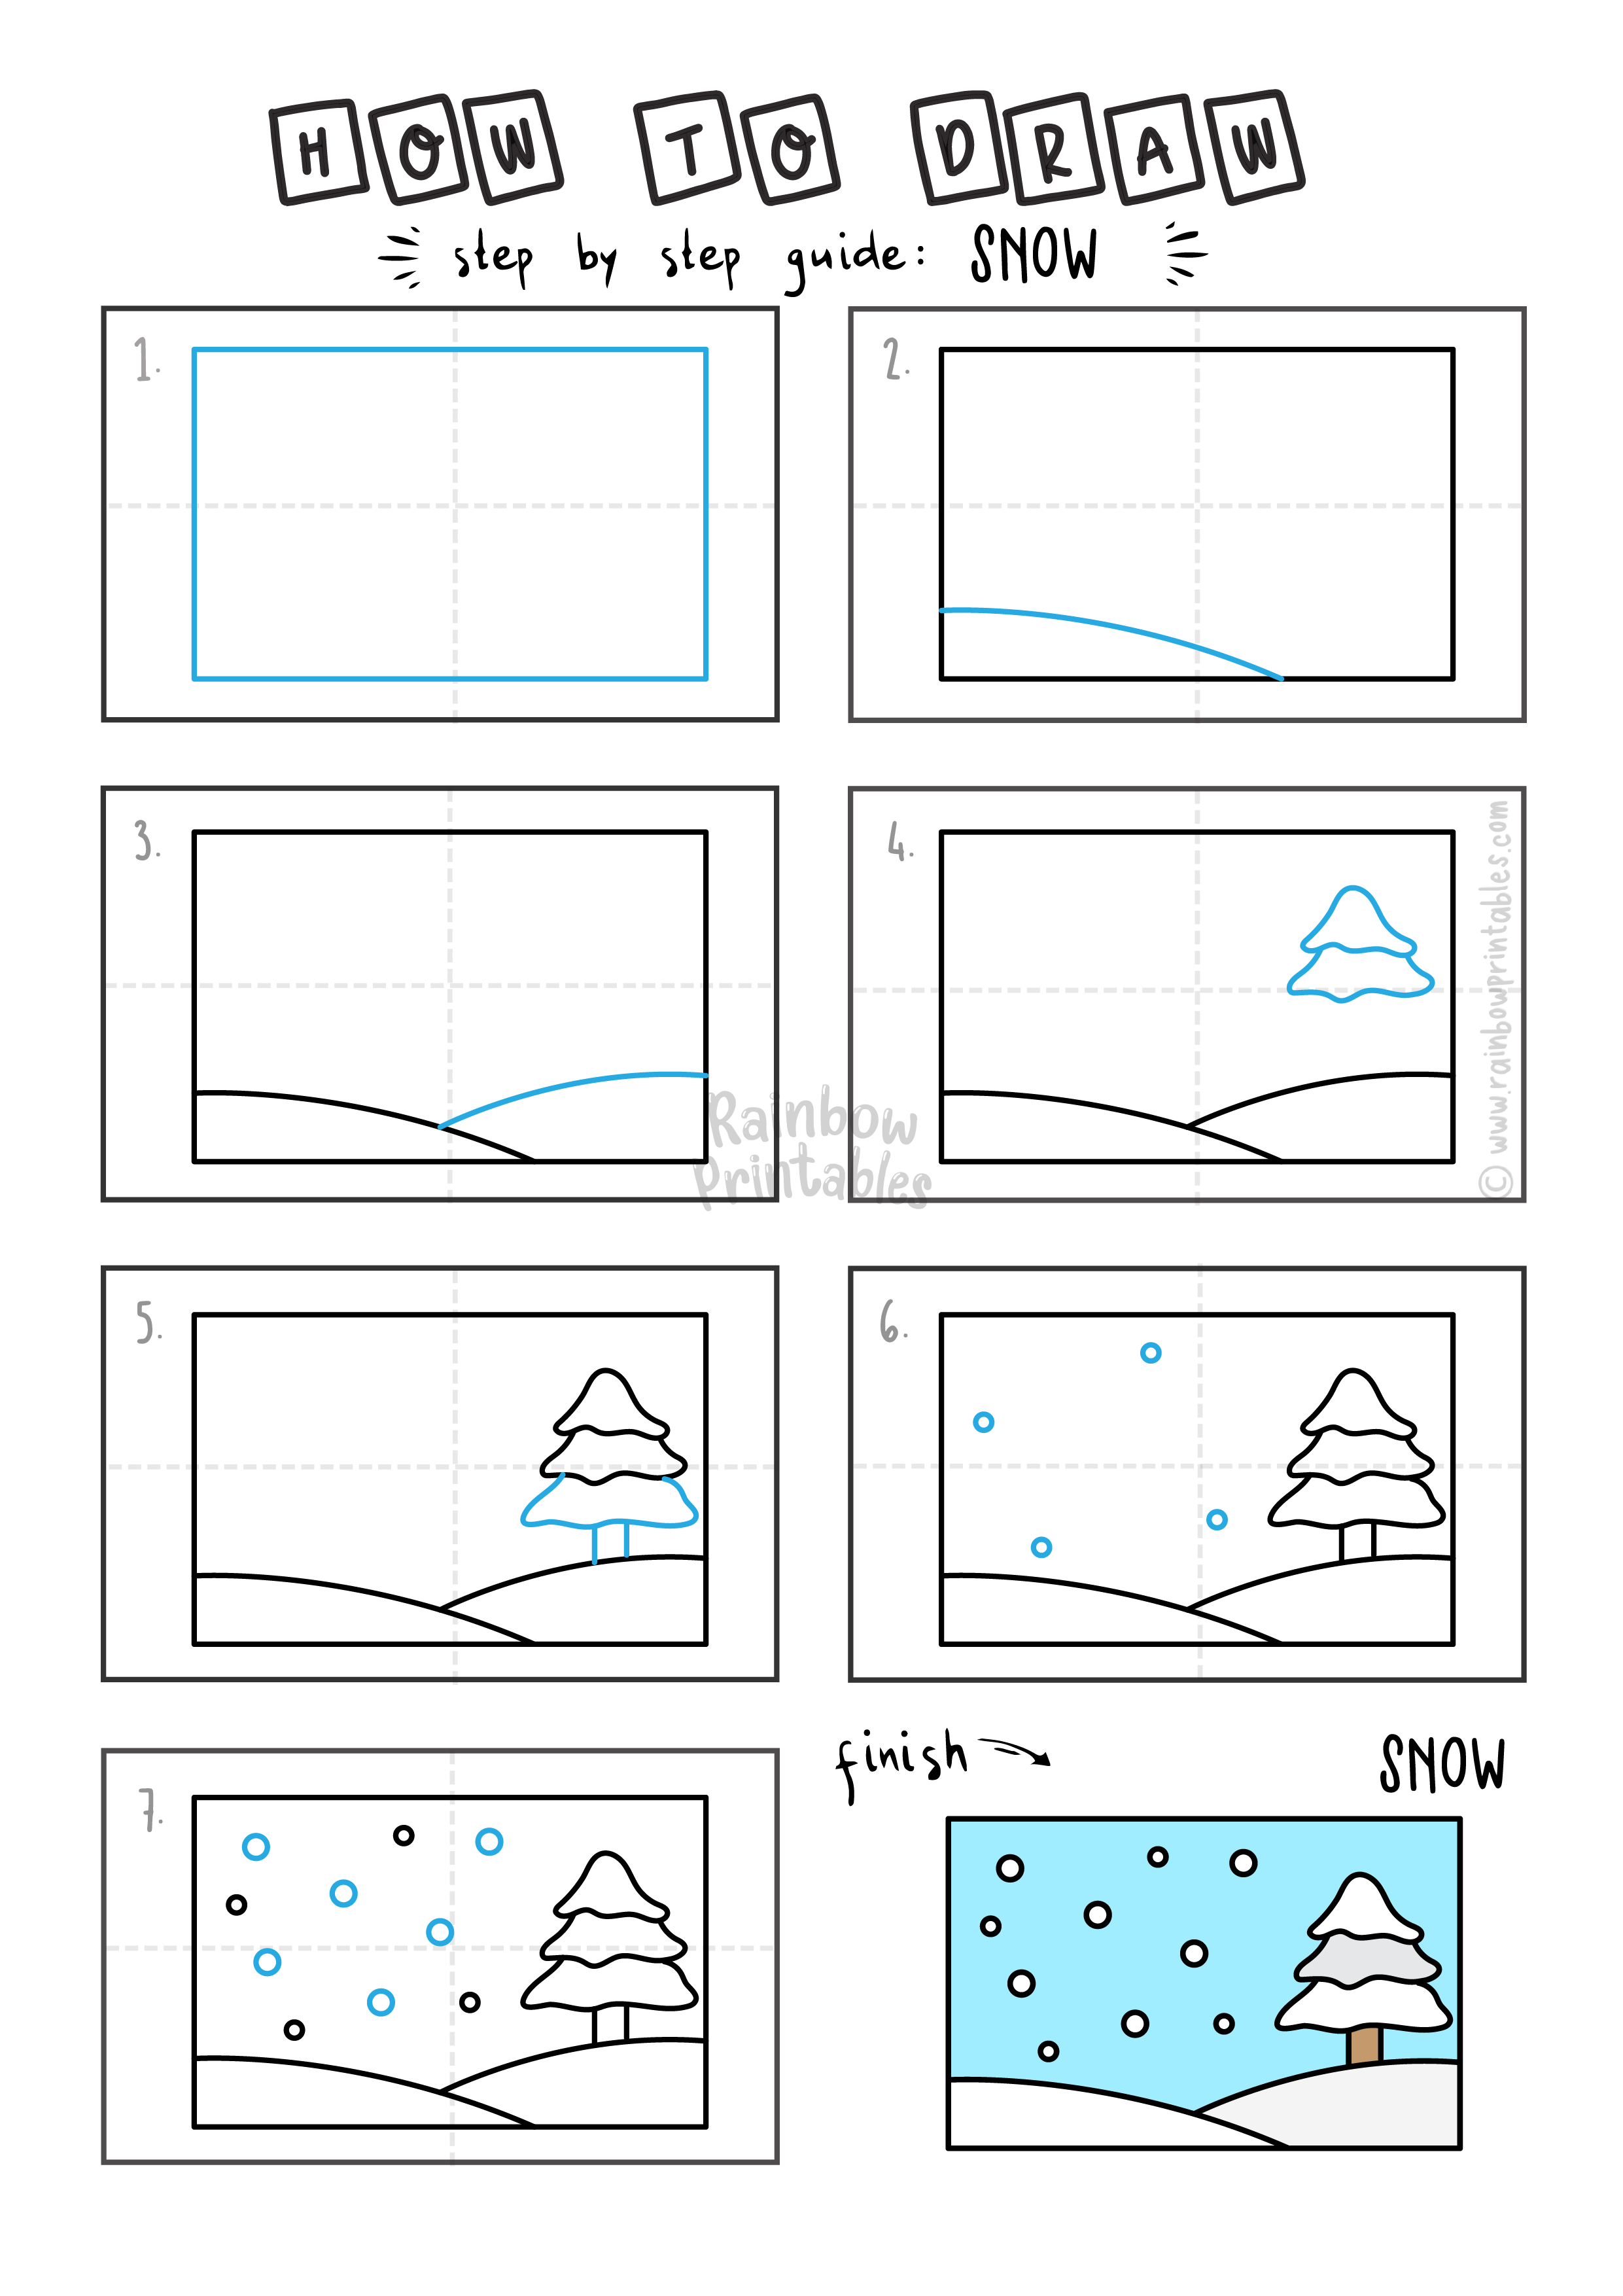 How To Draw a WINTER SNOW SNOWFLAKE SCENE LANDSCAPE Step By Step Easy Simple Drawing Guide for Kids